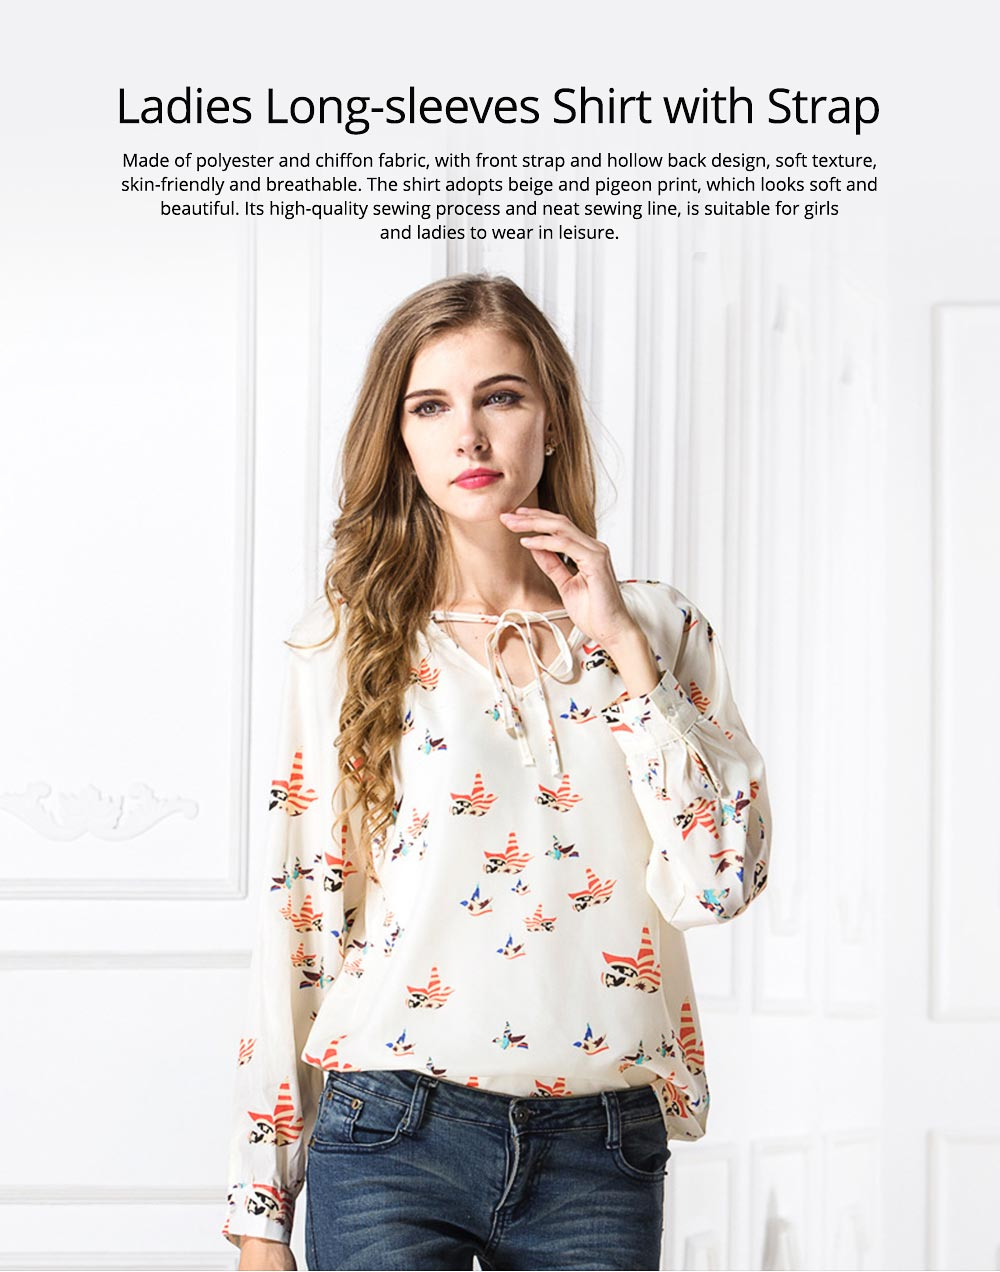 Women's V-neck Long-sleeve Chiffon Shirt, Ladies Shirt with Front Strap for Spring & Autumn, Hollow Back Shirt 0